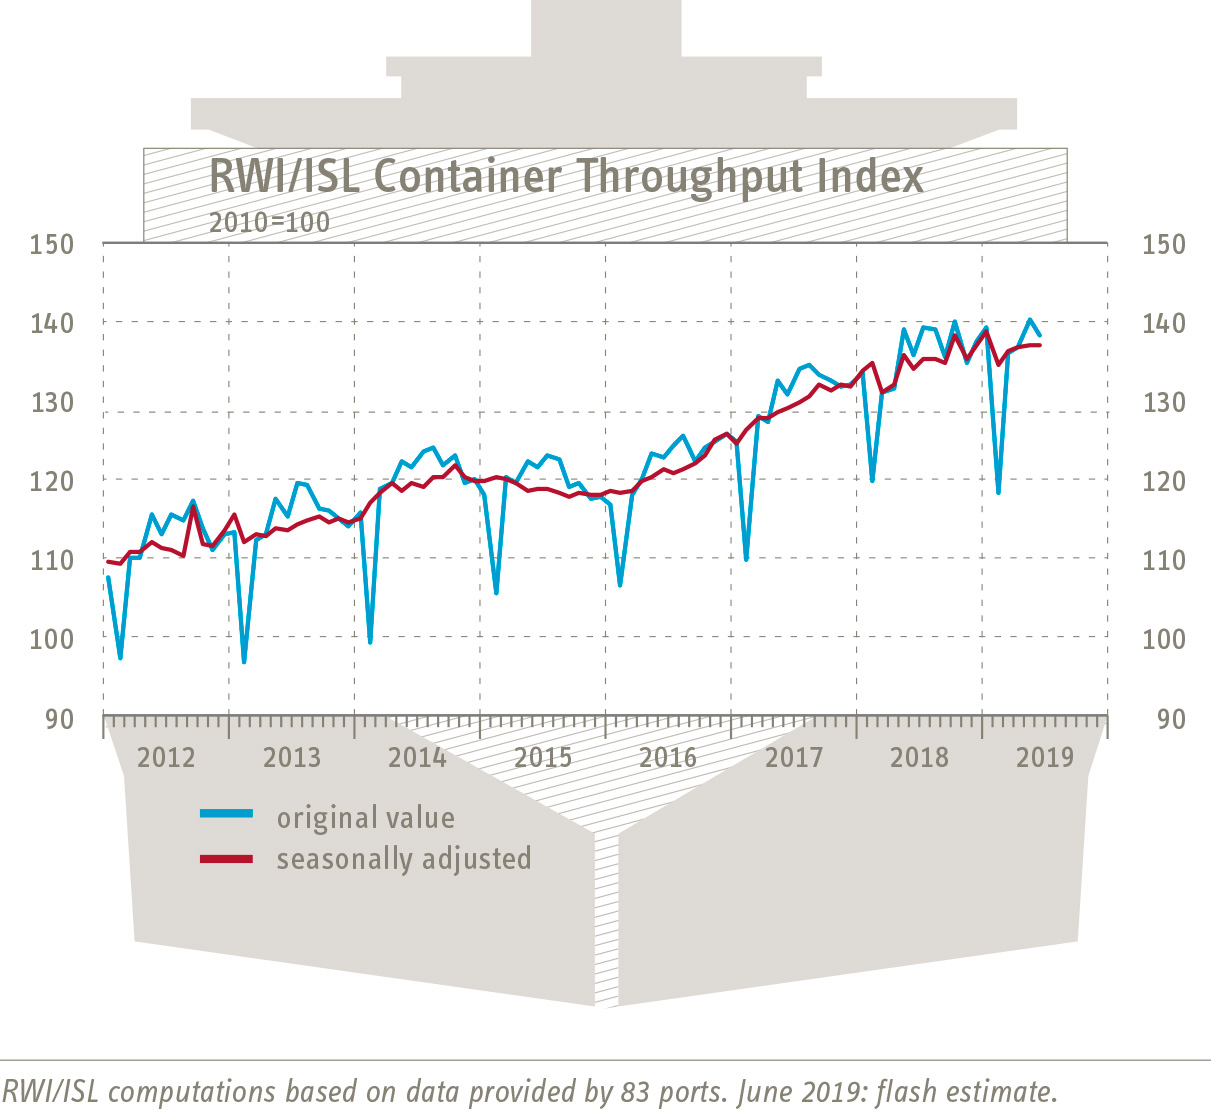 RWI/ISL Container Handling Index: Stagnating world trade